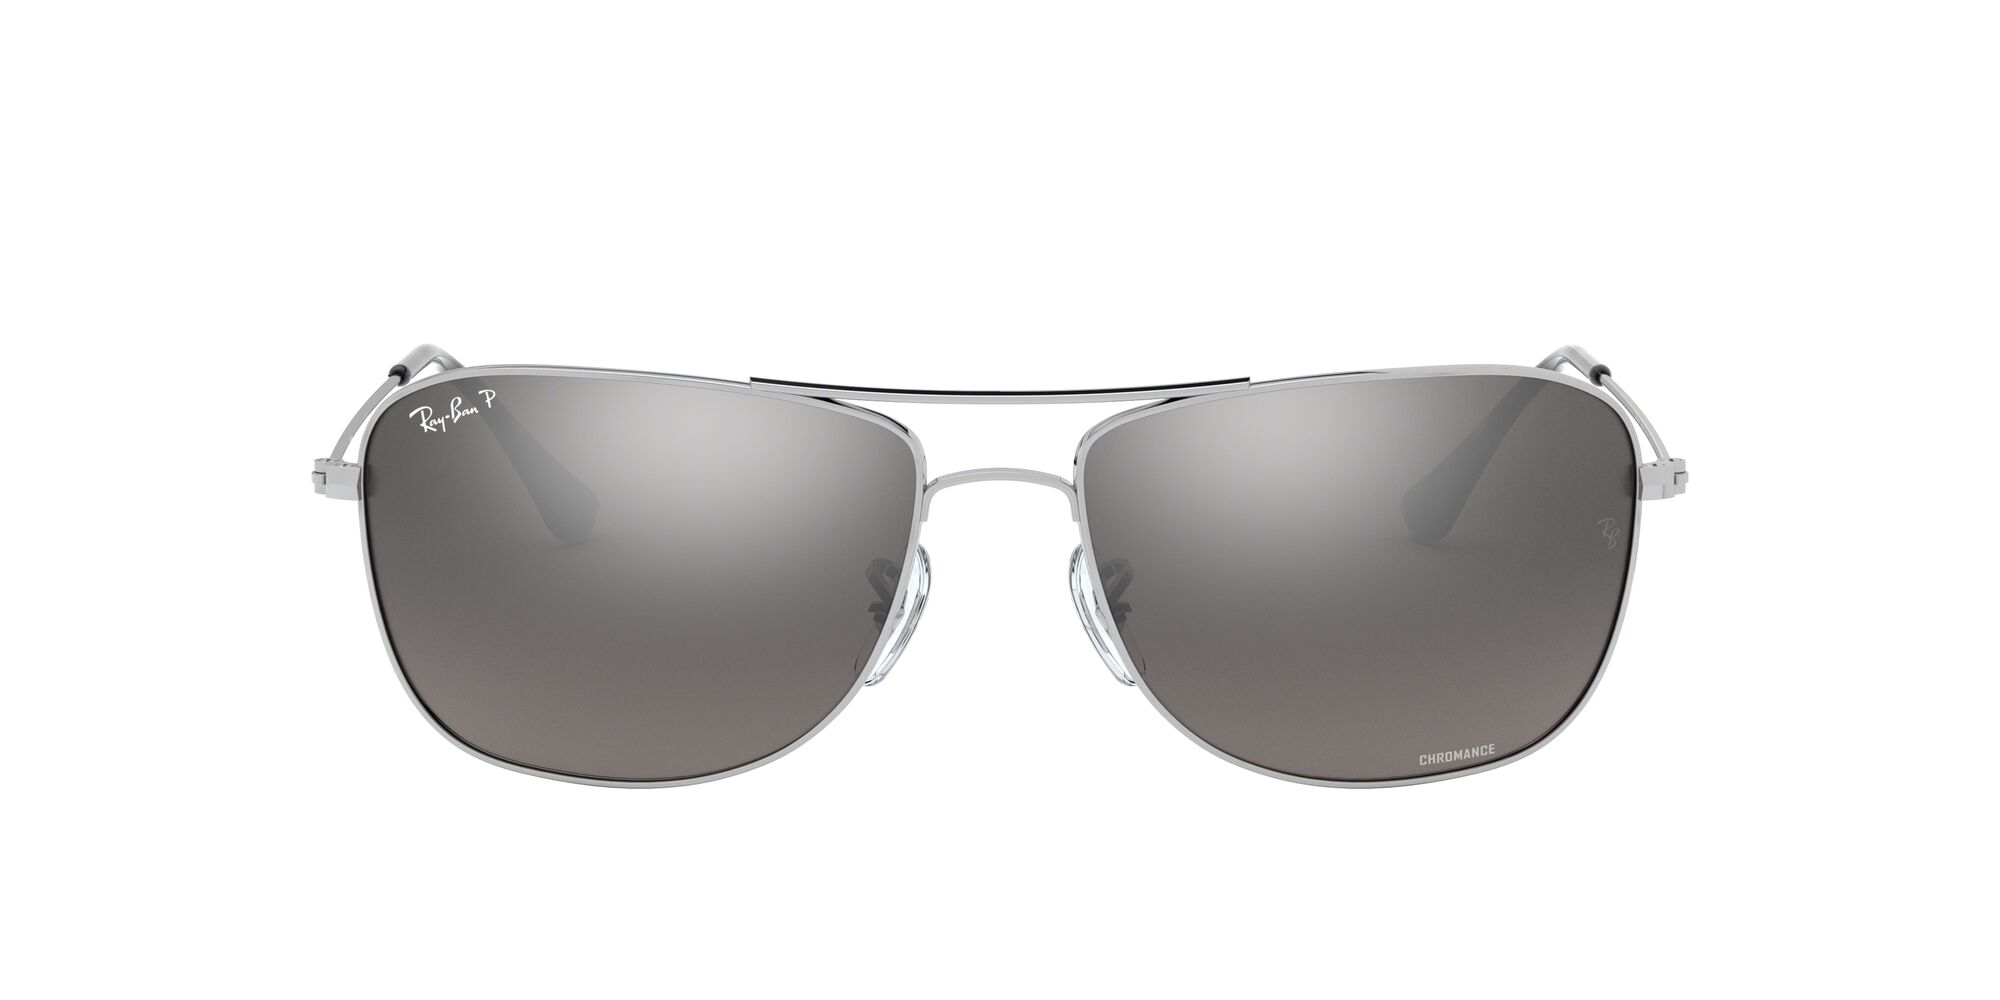 Front Ray-Ban Ray-Ban 0RB3543 003/5J 59/16 Zilver/Grijs